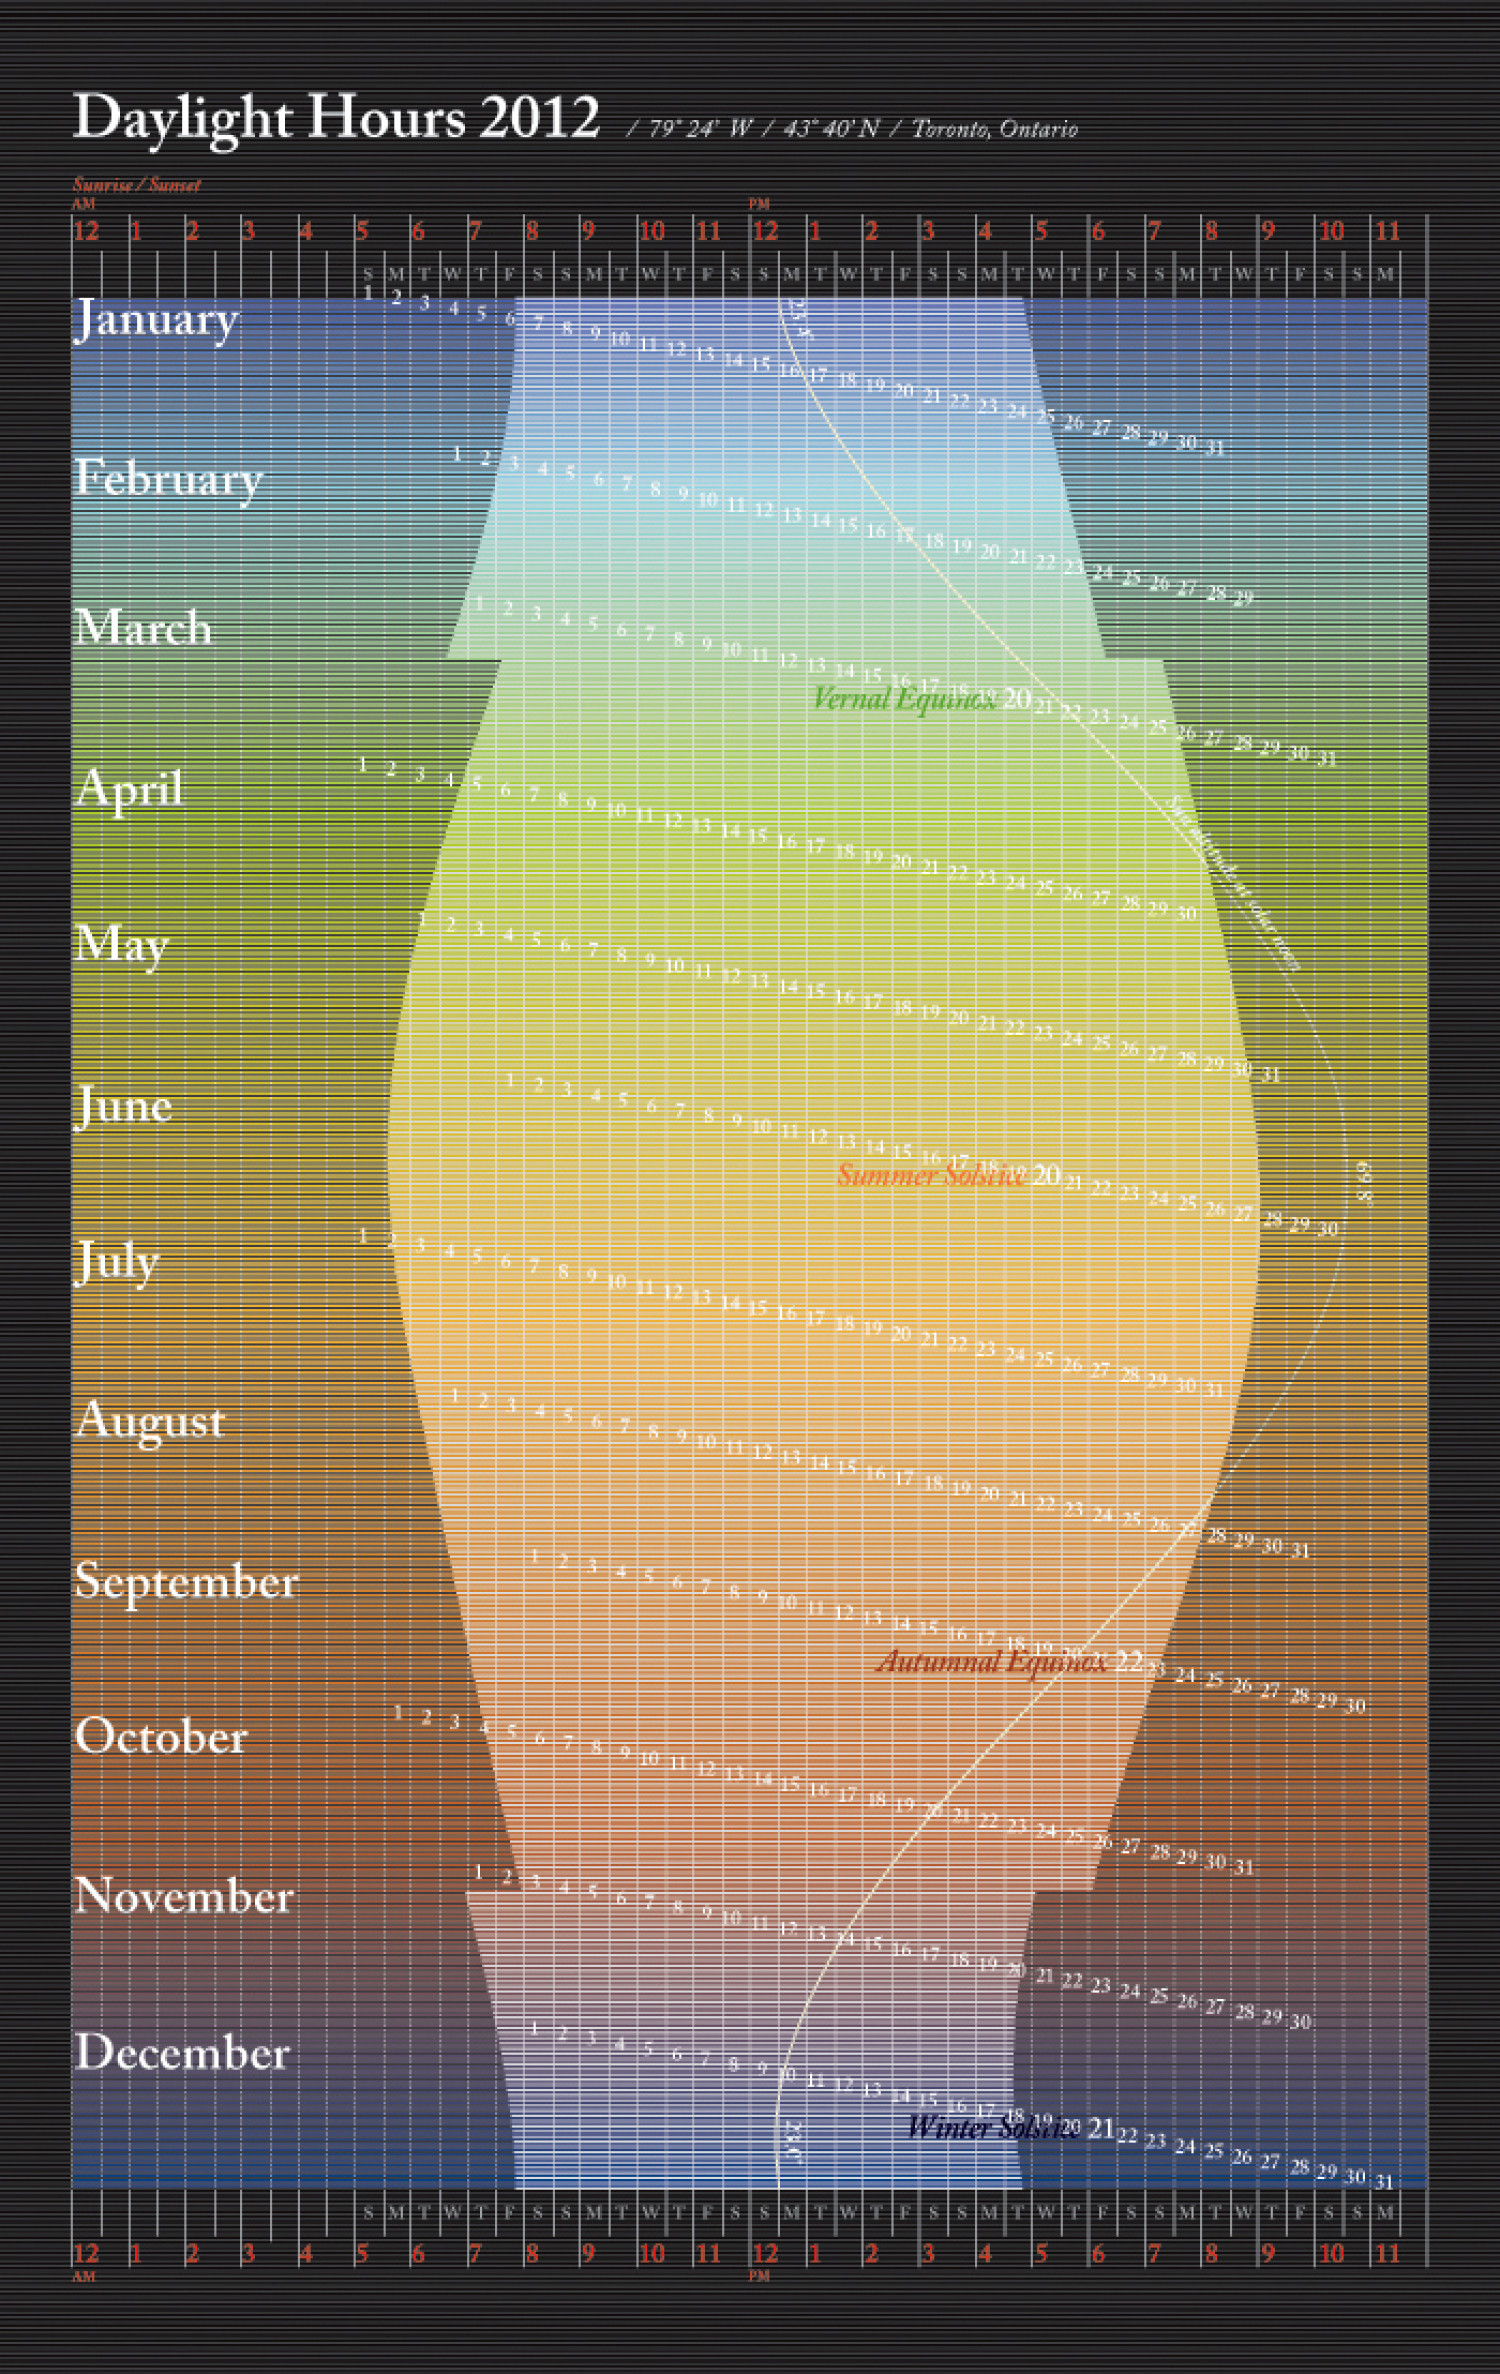 Daylight Hours 2012 Infographic